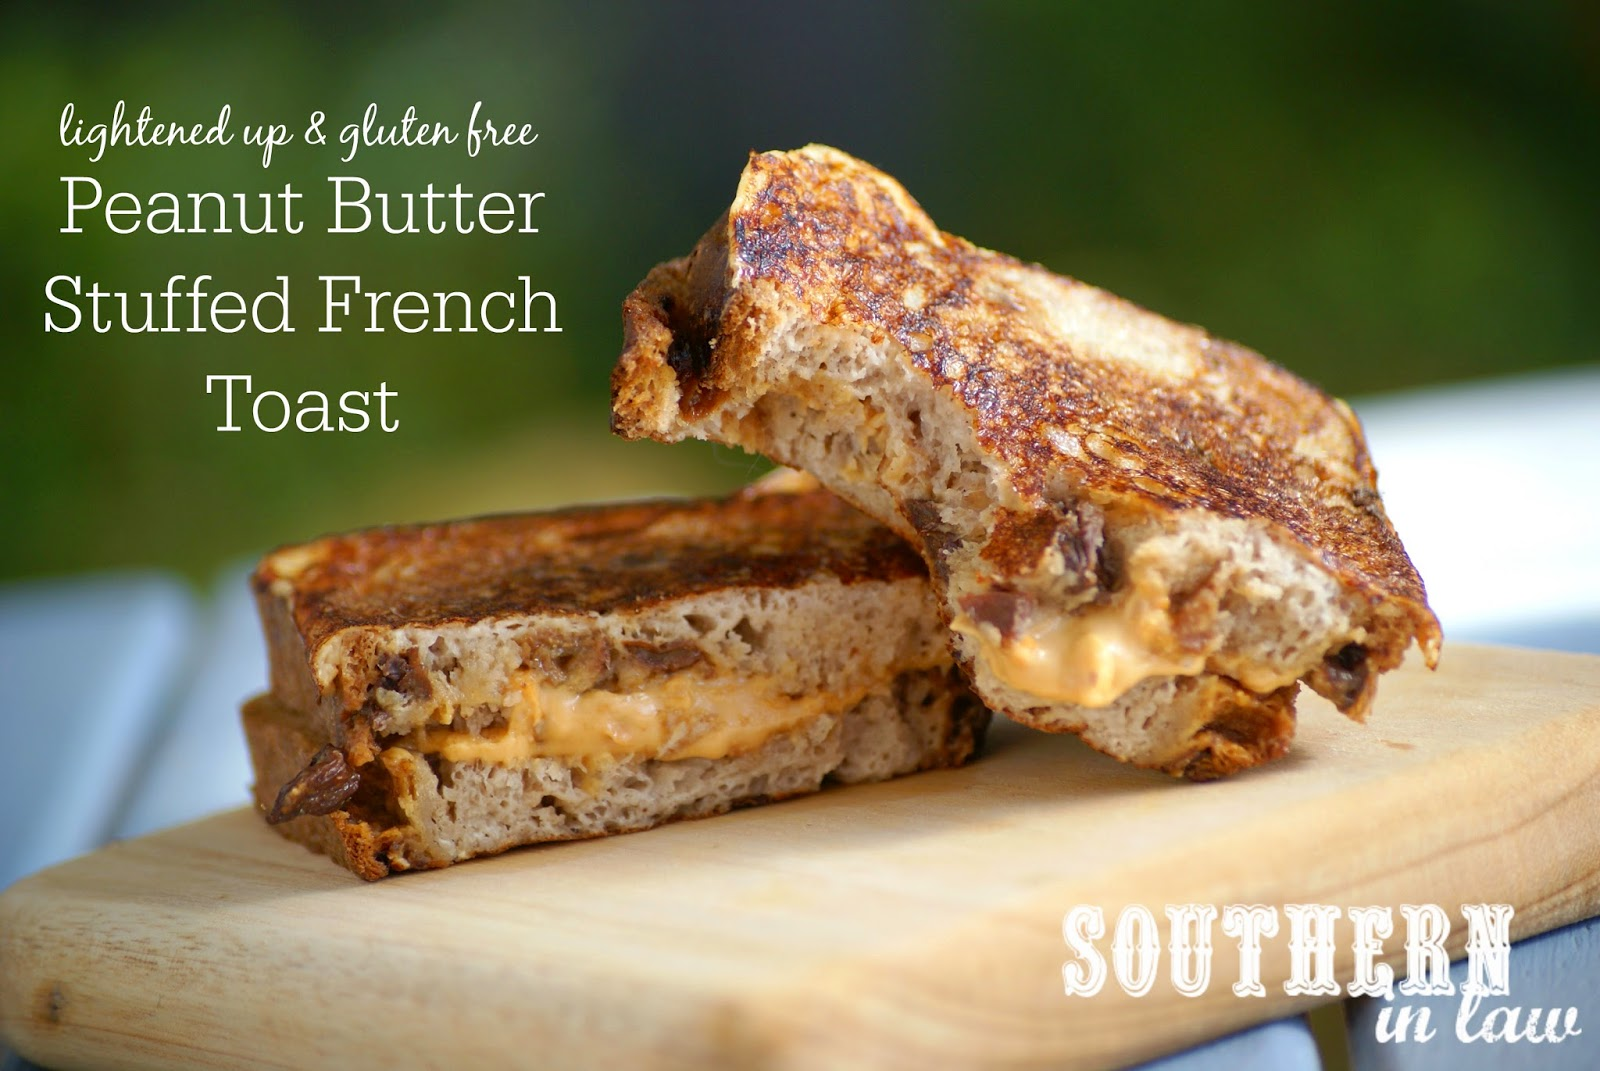 Healthy Peanut Butter Stuffed French Toast Recipe on Cinnamon Raisin Bread - gluten free, low fat, healthy, sugar free, clean eating friendly